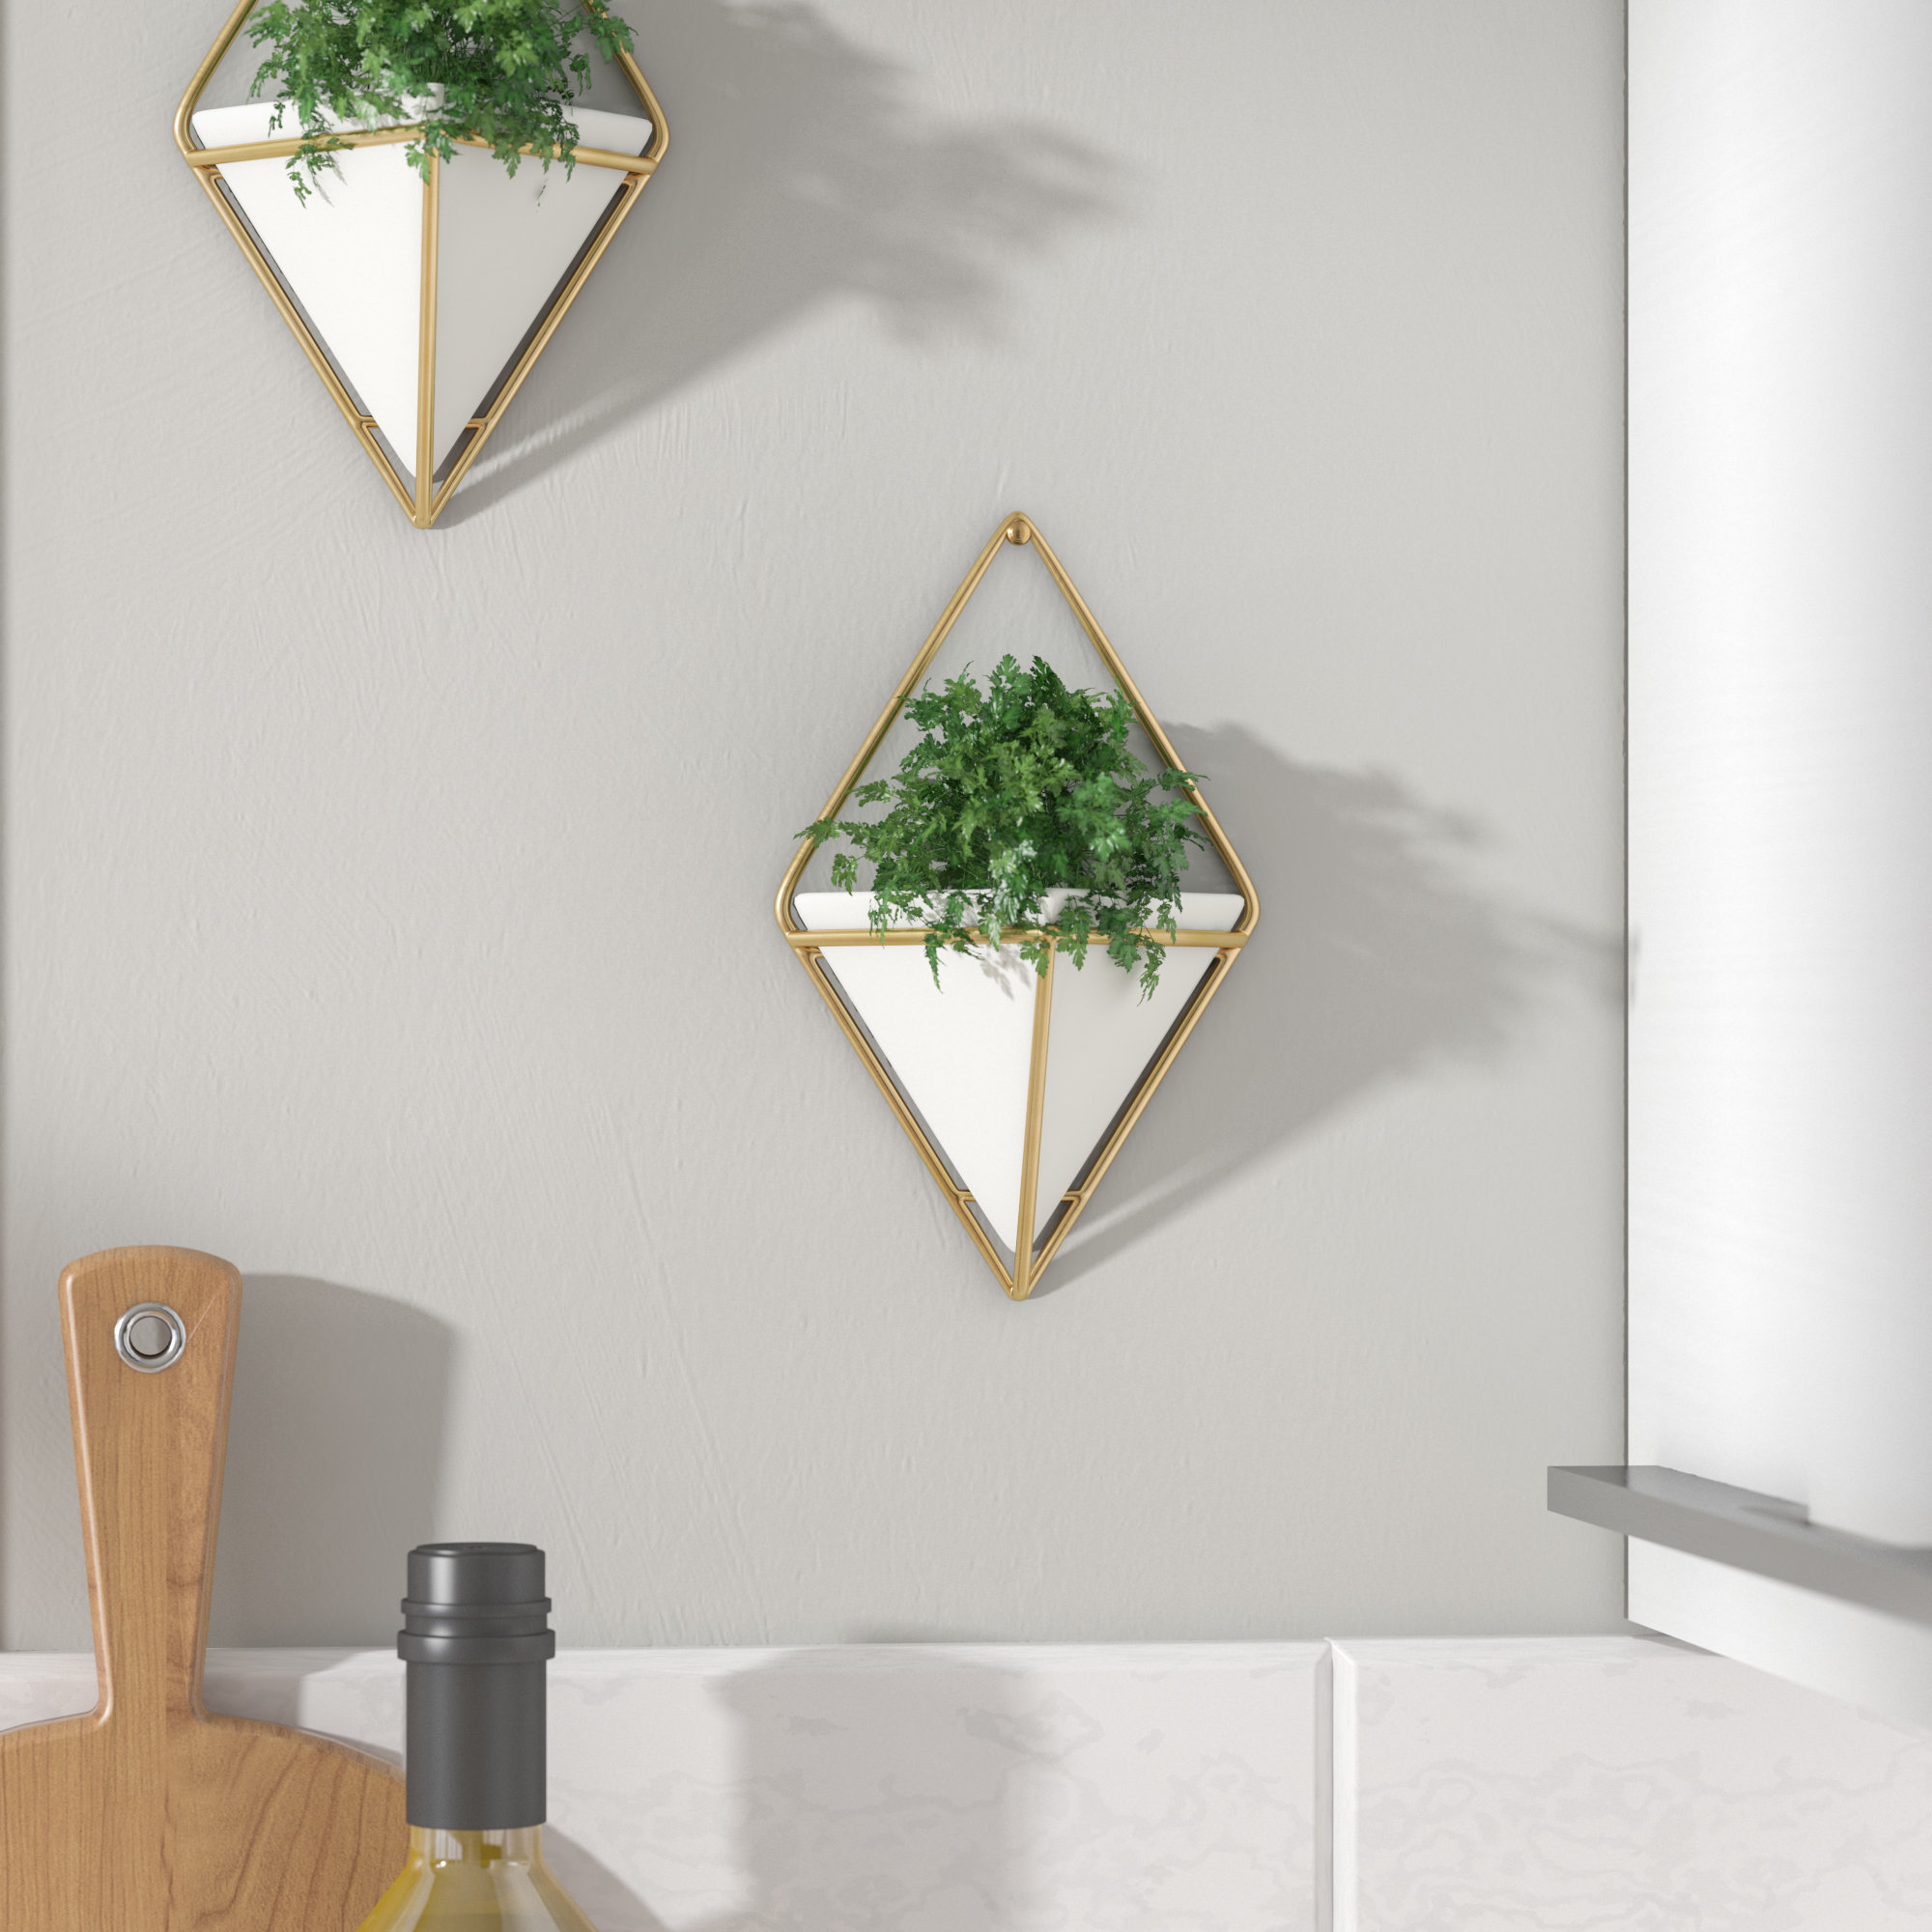 Wayfair Intended For Recent 2 Piece Trigg Wall Decor Sets (Set Of 2) (View 19 of 20)